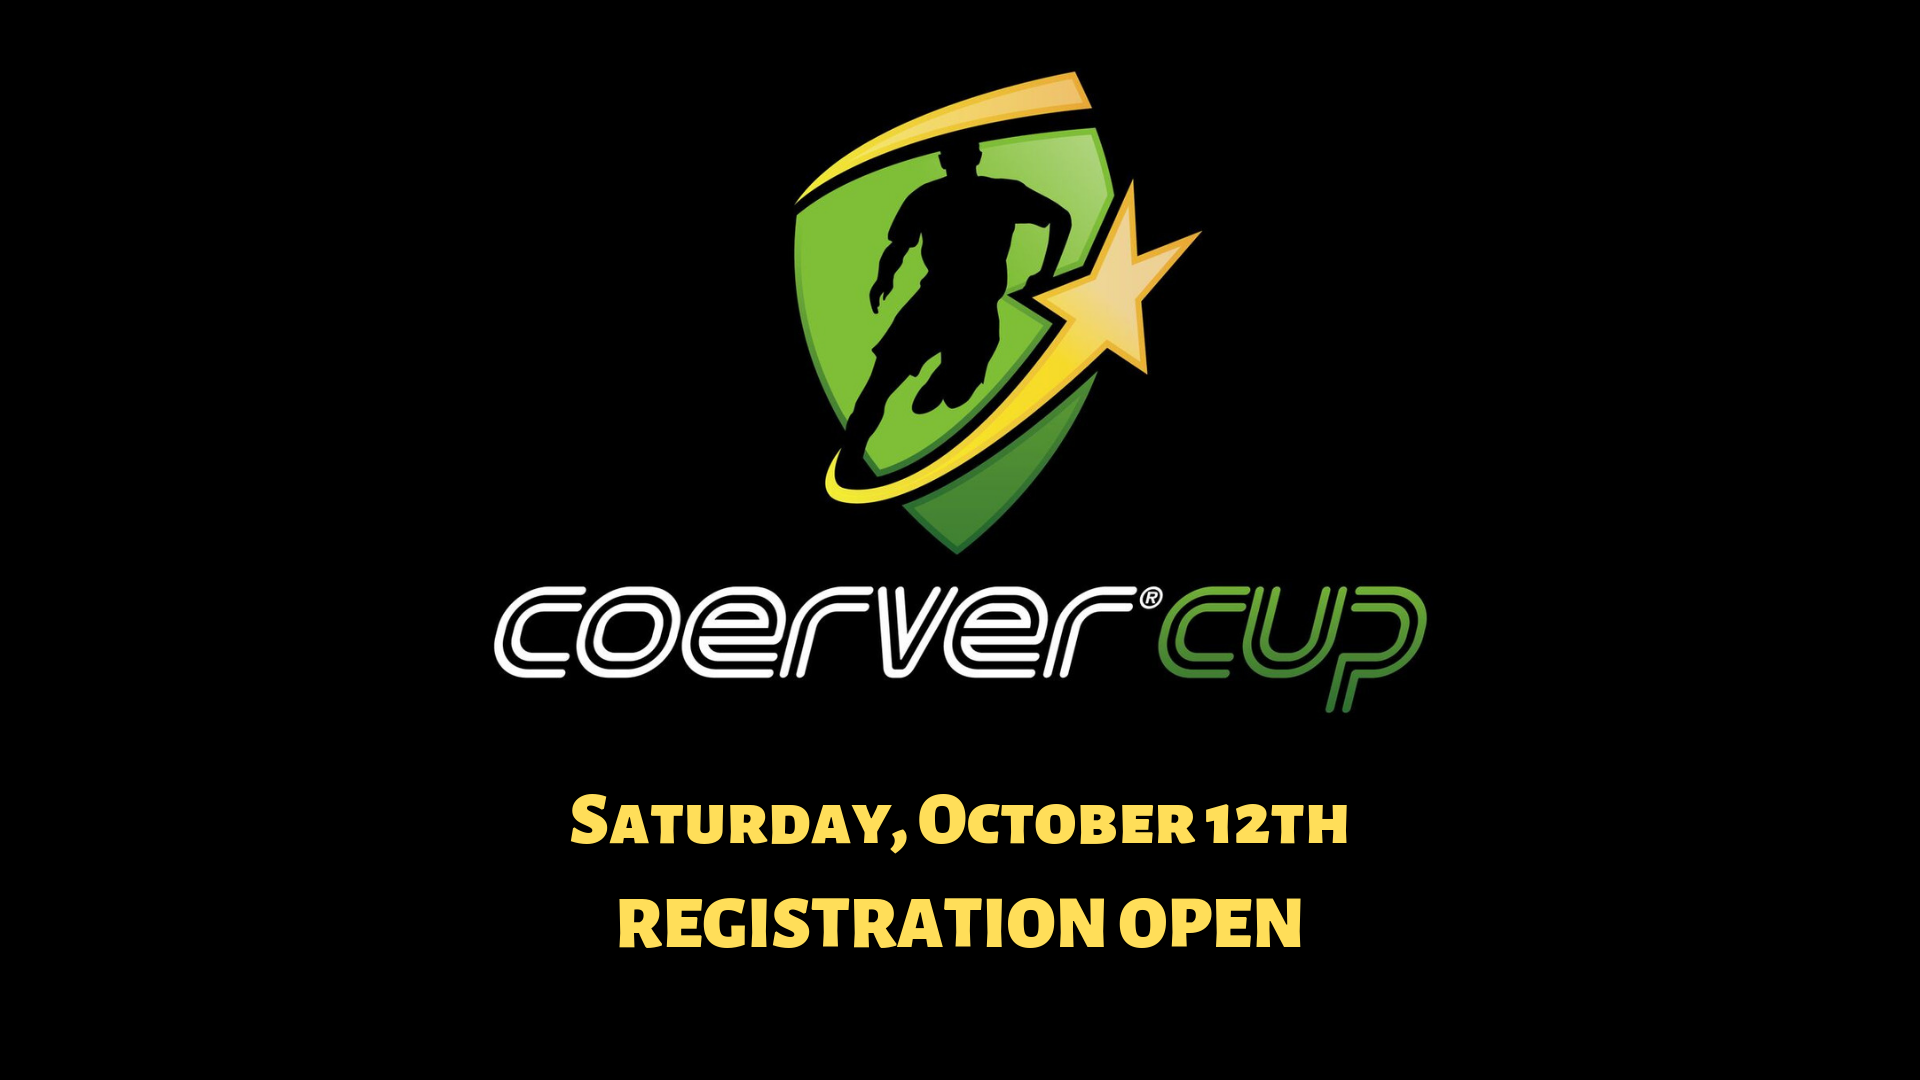 Coerver Cup Fall 2019